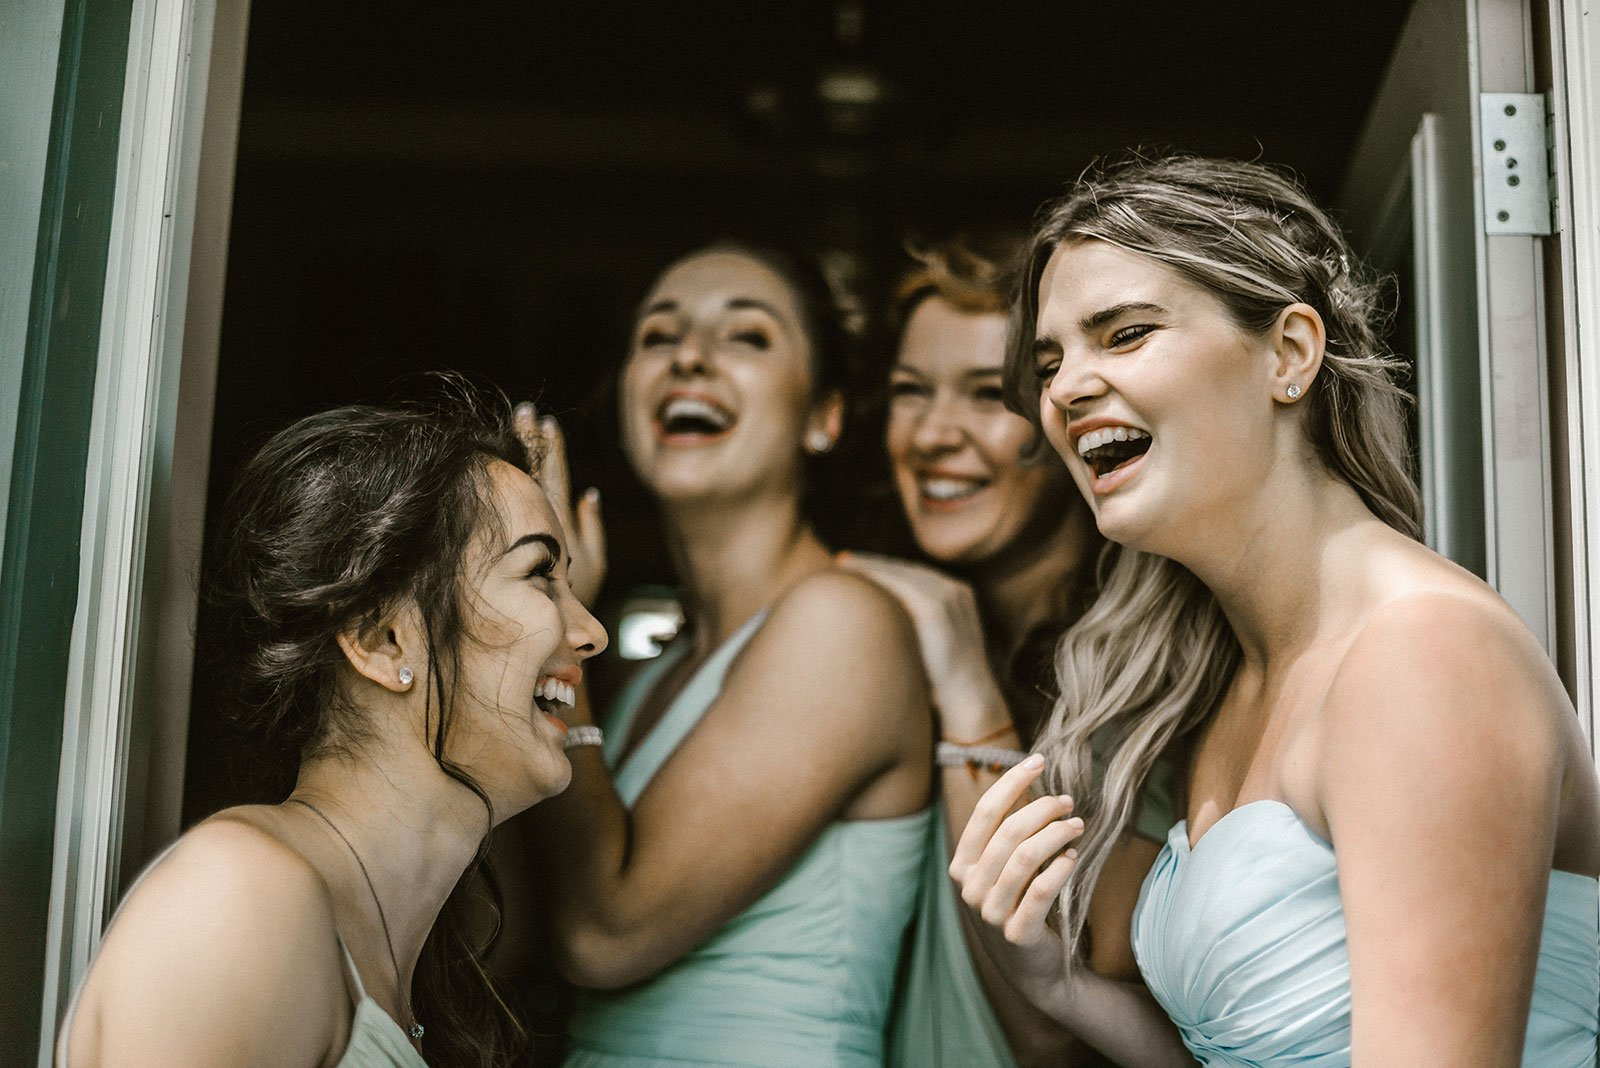 Group of bridesmaids standing in a doorway laughing wearing mint green dresses